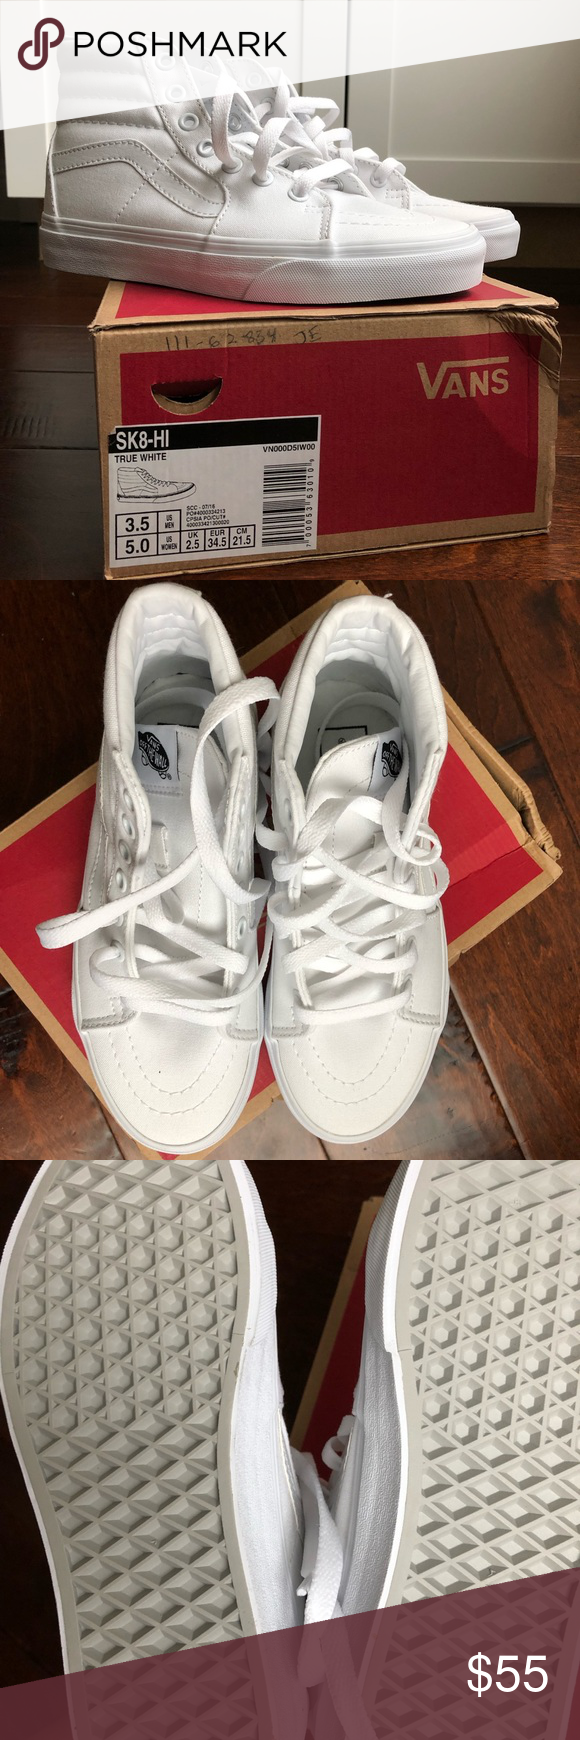 New with box canvas SK8-HI Vans size 3.5 5.0 These are new in excellent  condition never worn Canvas Sk8-HI Vans never been worn. There are no  skuffs marks ... b661bd69f